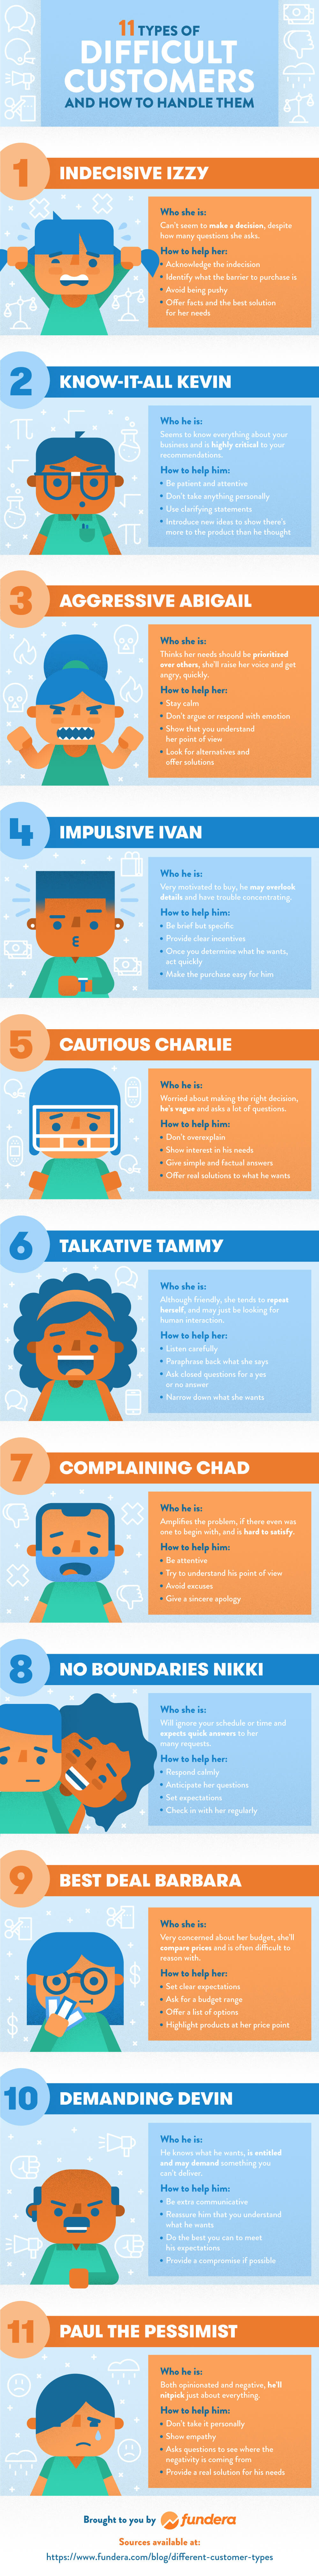 infographic: 11 types of difficult customers and how to handle them